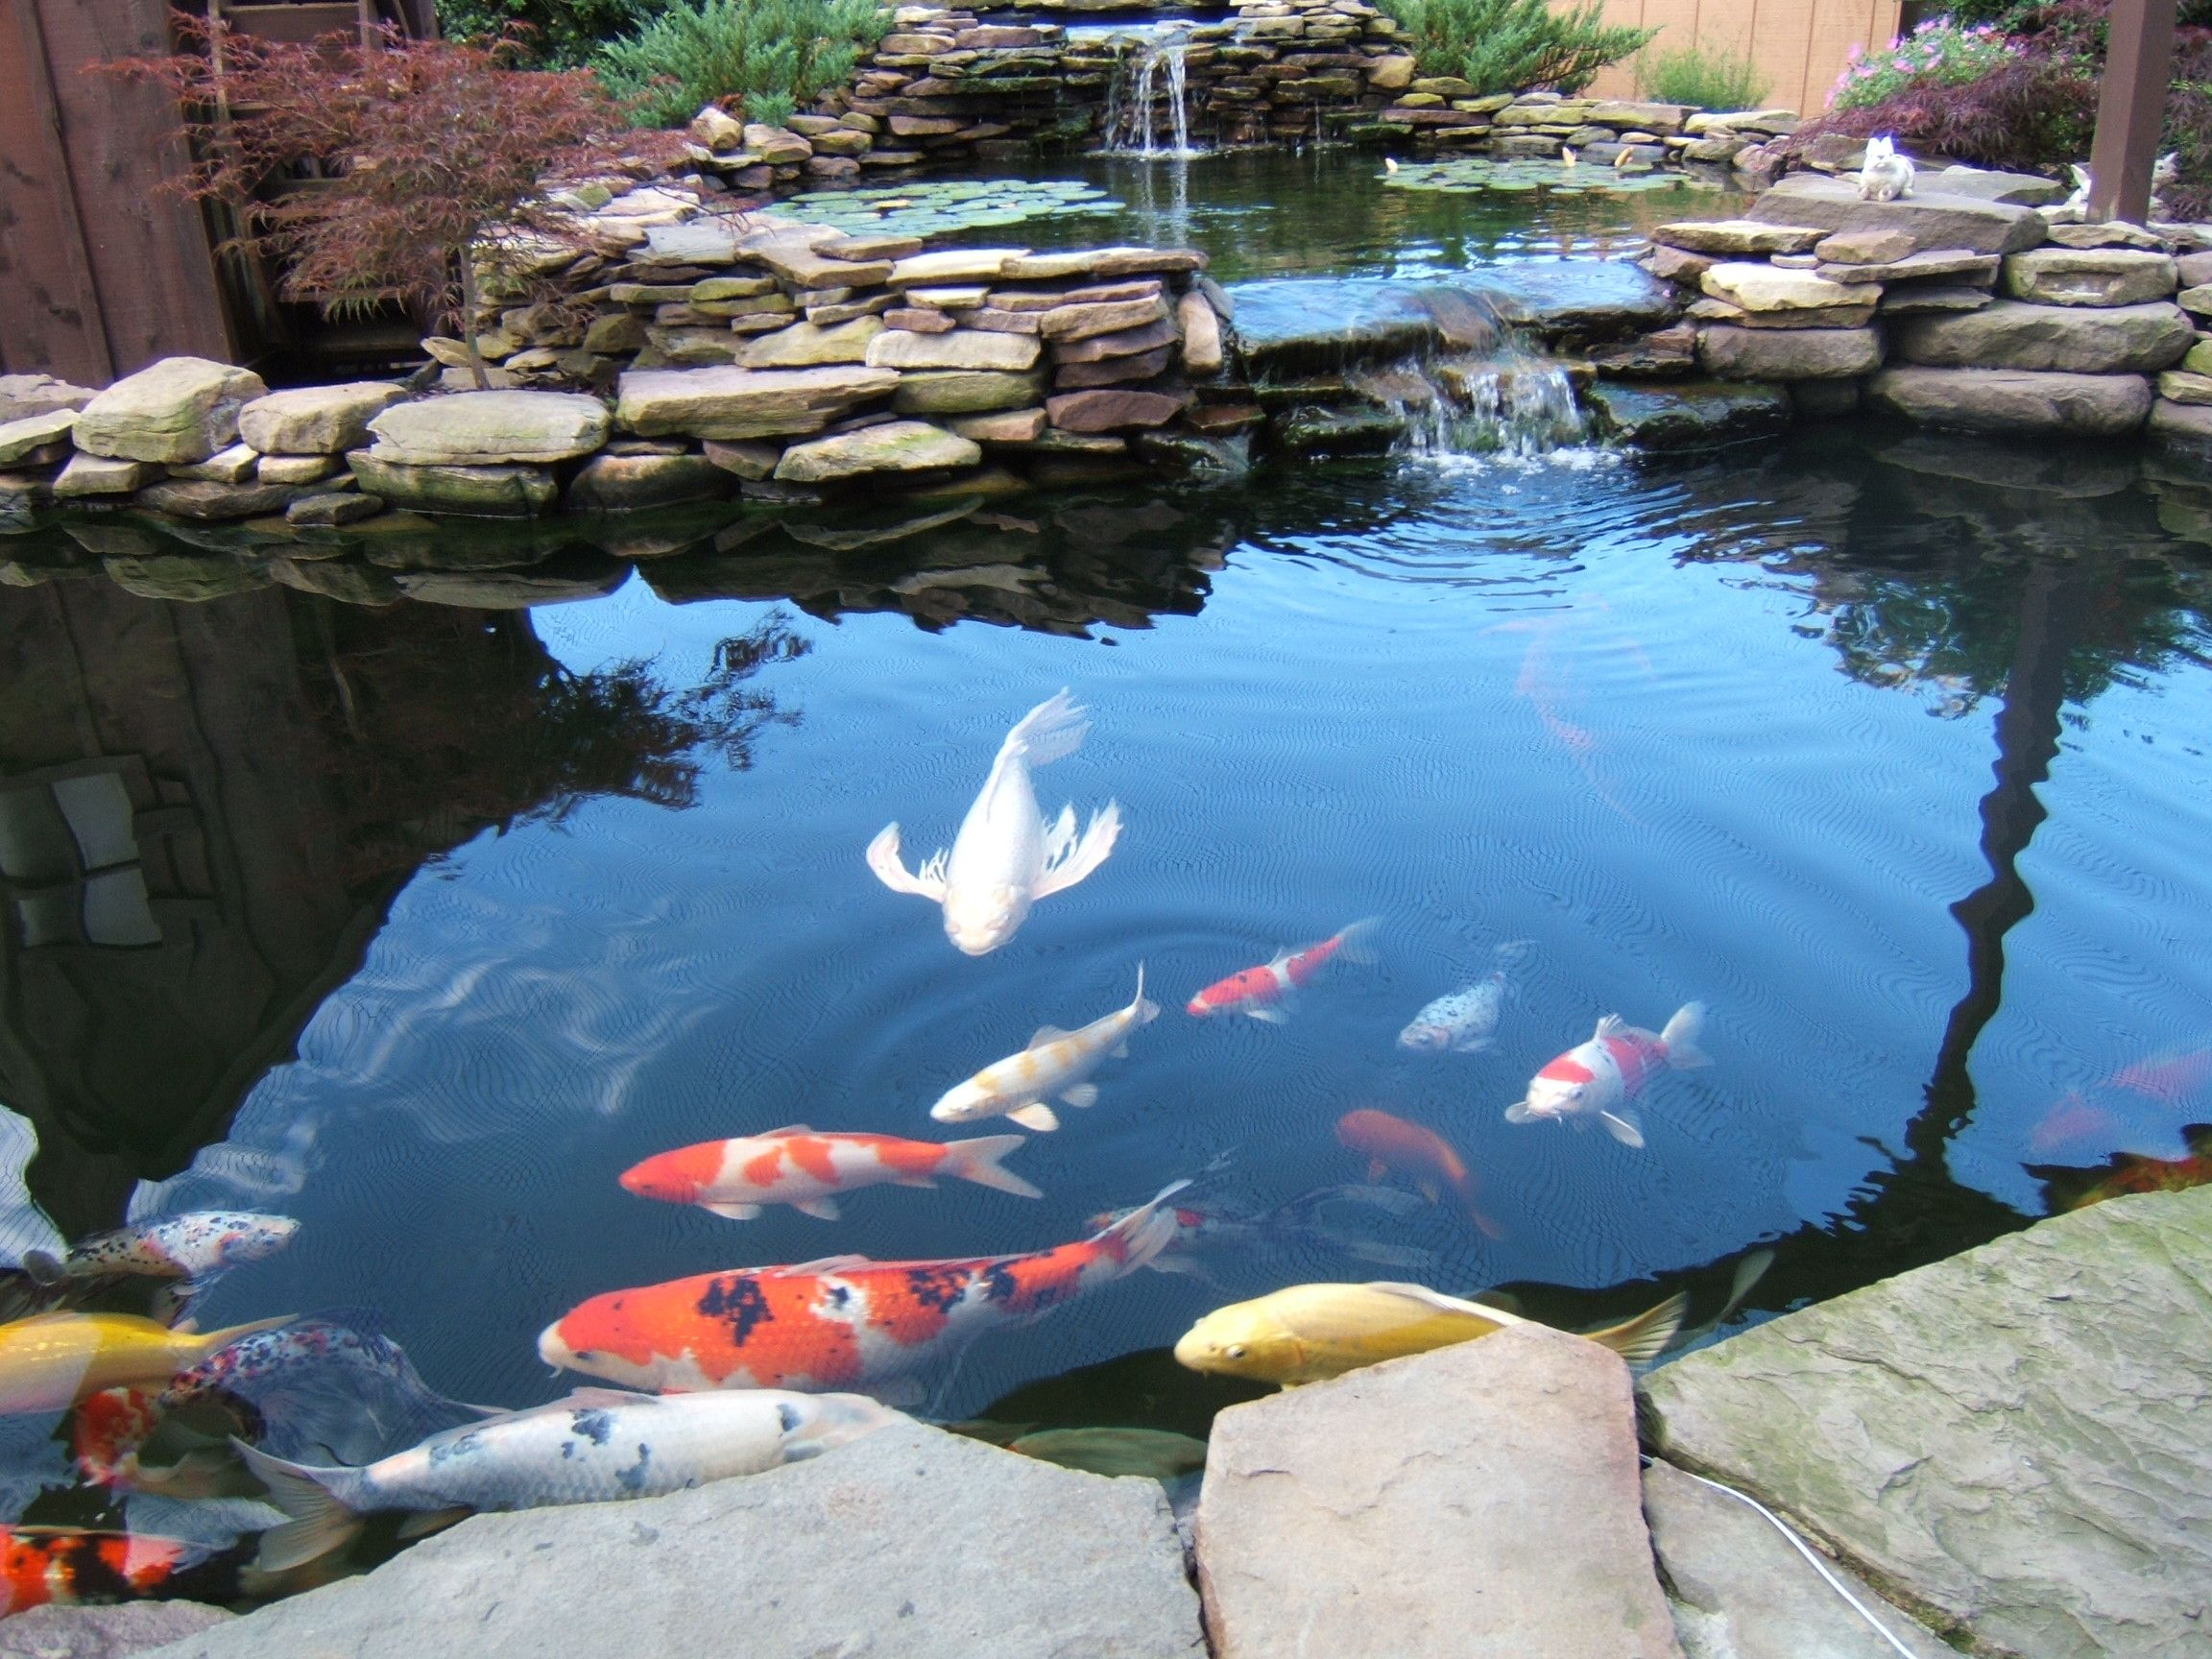 hight resolution of 9 awesome diy koi pond and waterfall ideas for your back yard hit diy crafts